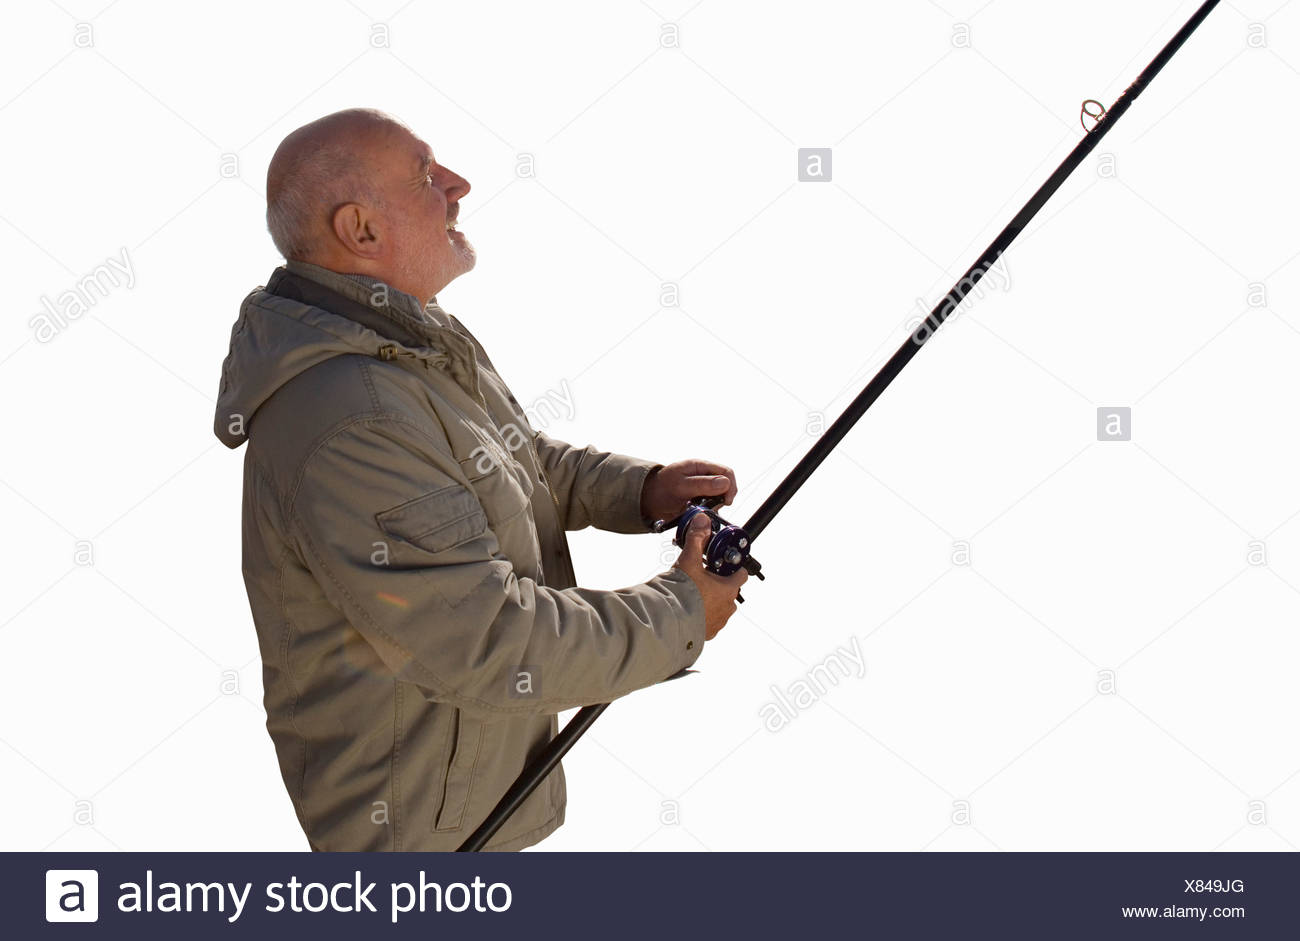 1300x941 Fishing Rod Cut Out Stock Photos Amp Fishing Rod Cut Out Stock